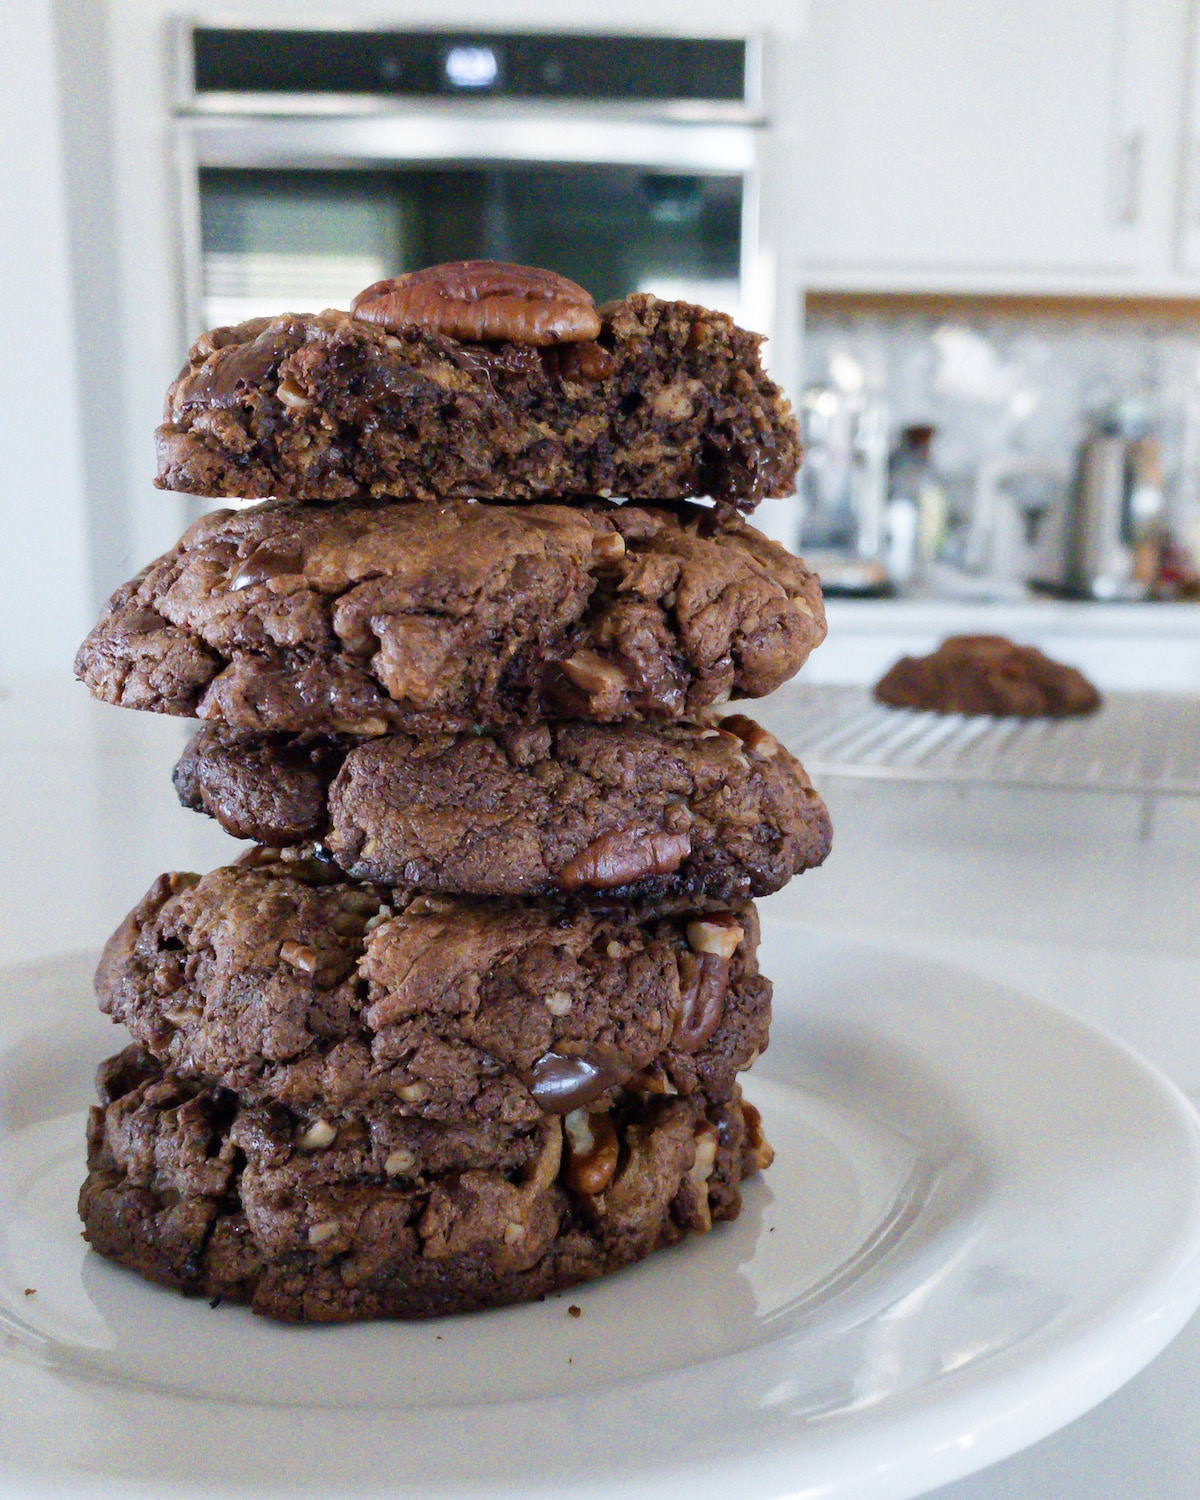 Stack of brown cookies on white plate